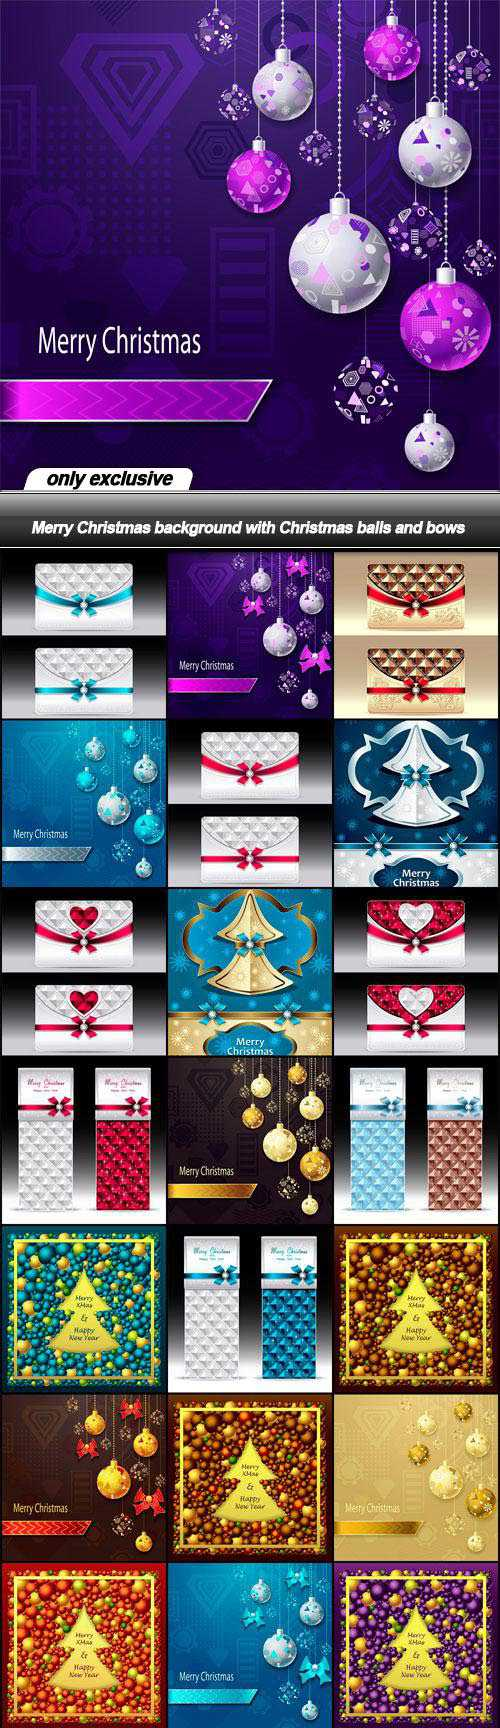 Merry Christmas background with Christmas balls and bows